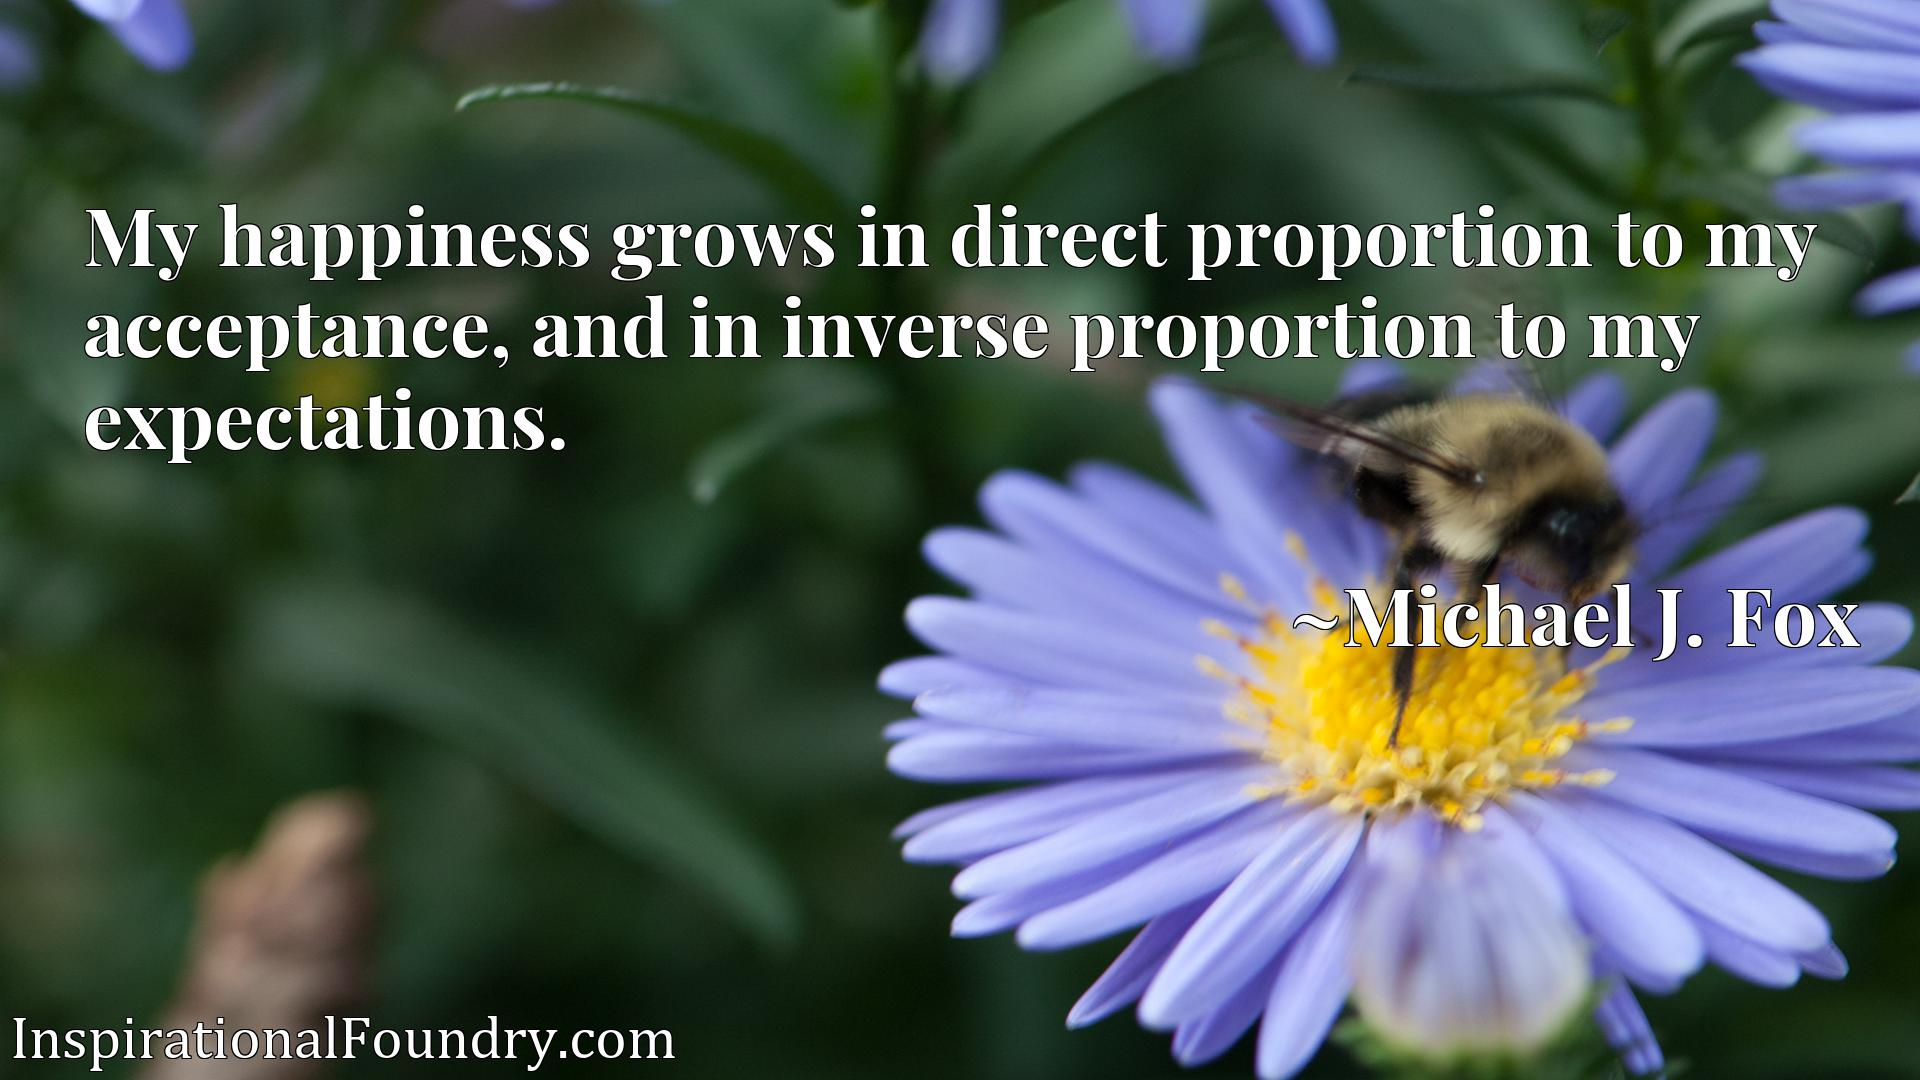 My happiness grows in direct proportion to my acceptance, and in inverse proportion to my expectations.